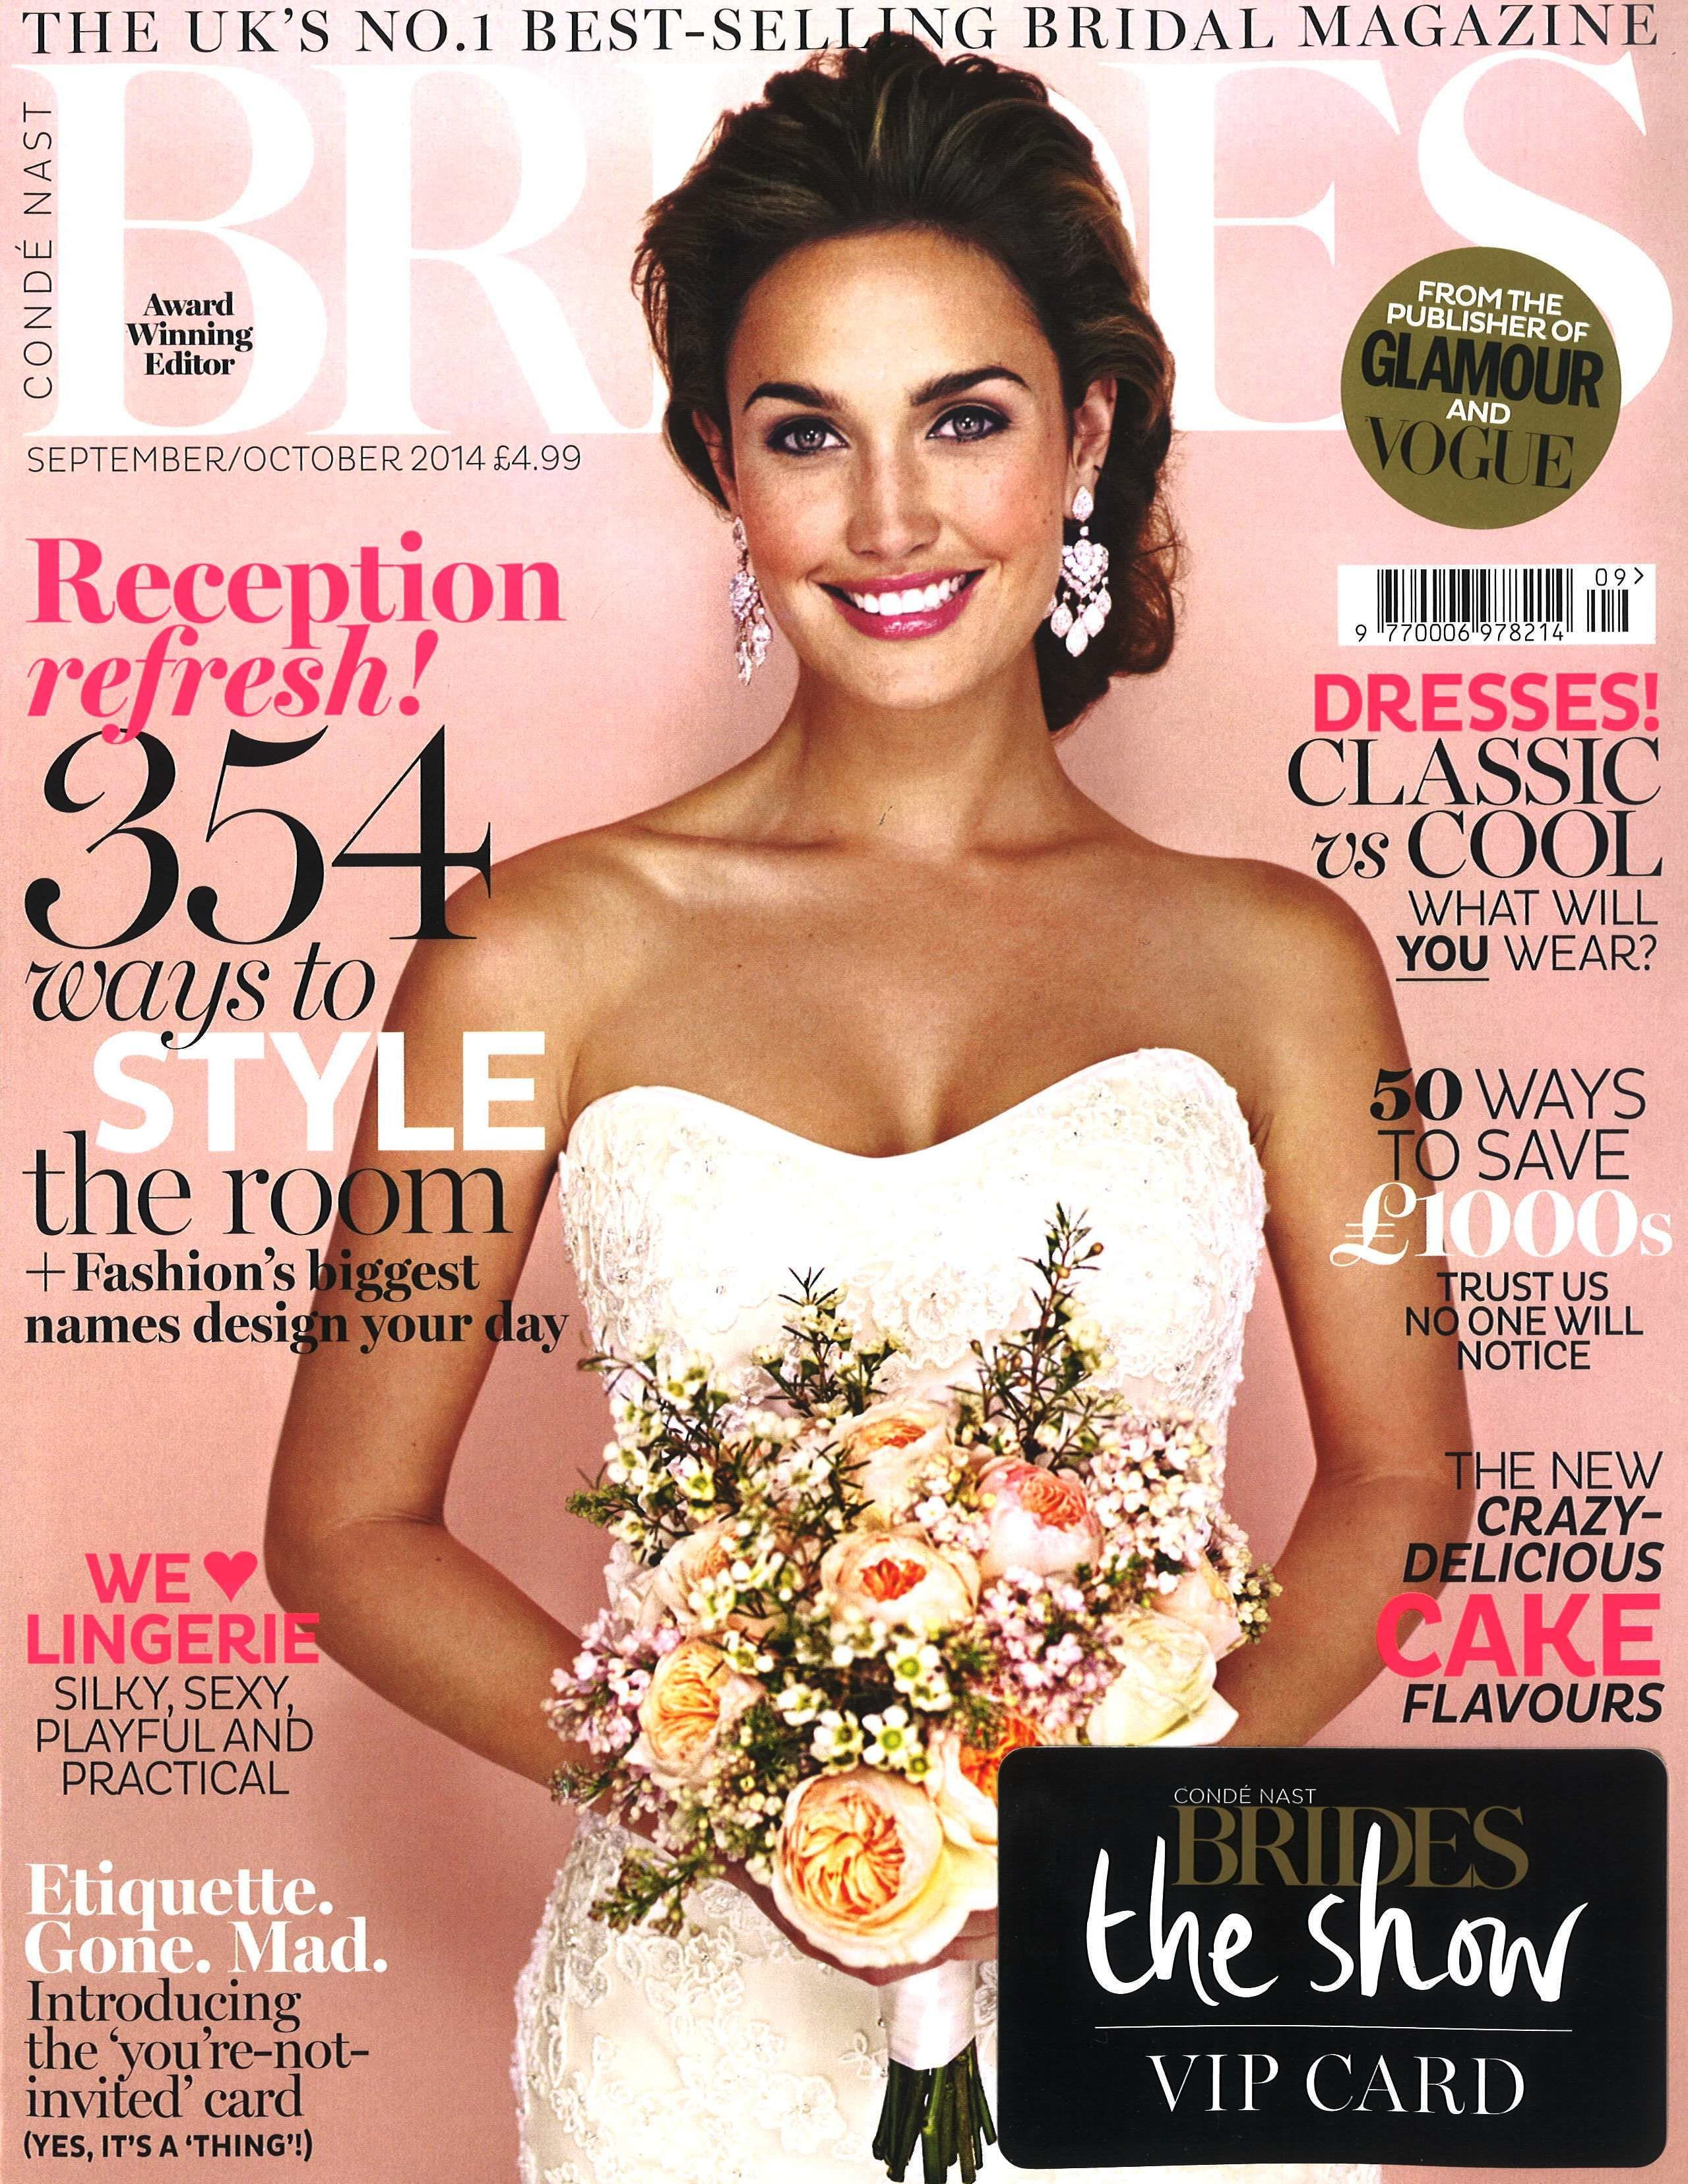 What are the options for removing cellulite? - Brides SeptemberOctober 2014 PHI Clinic 1